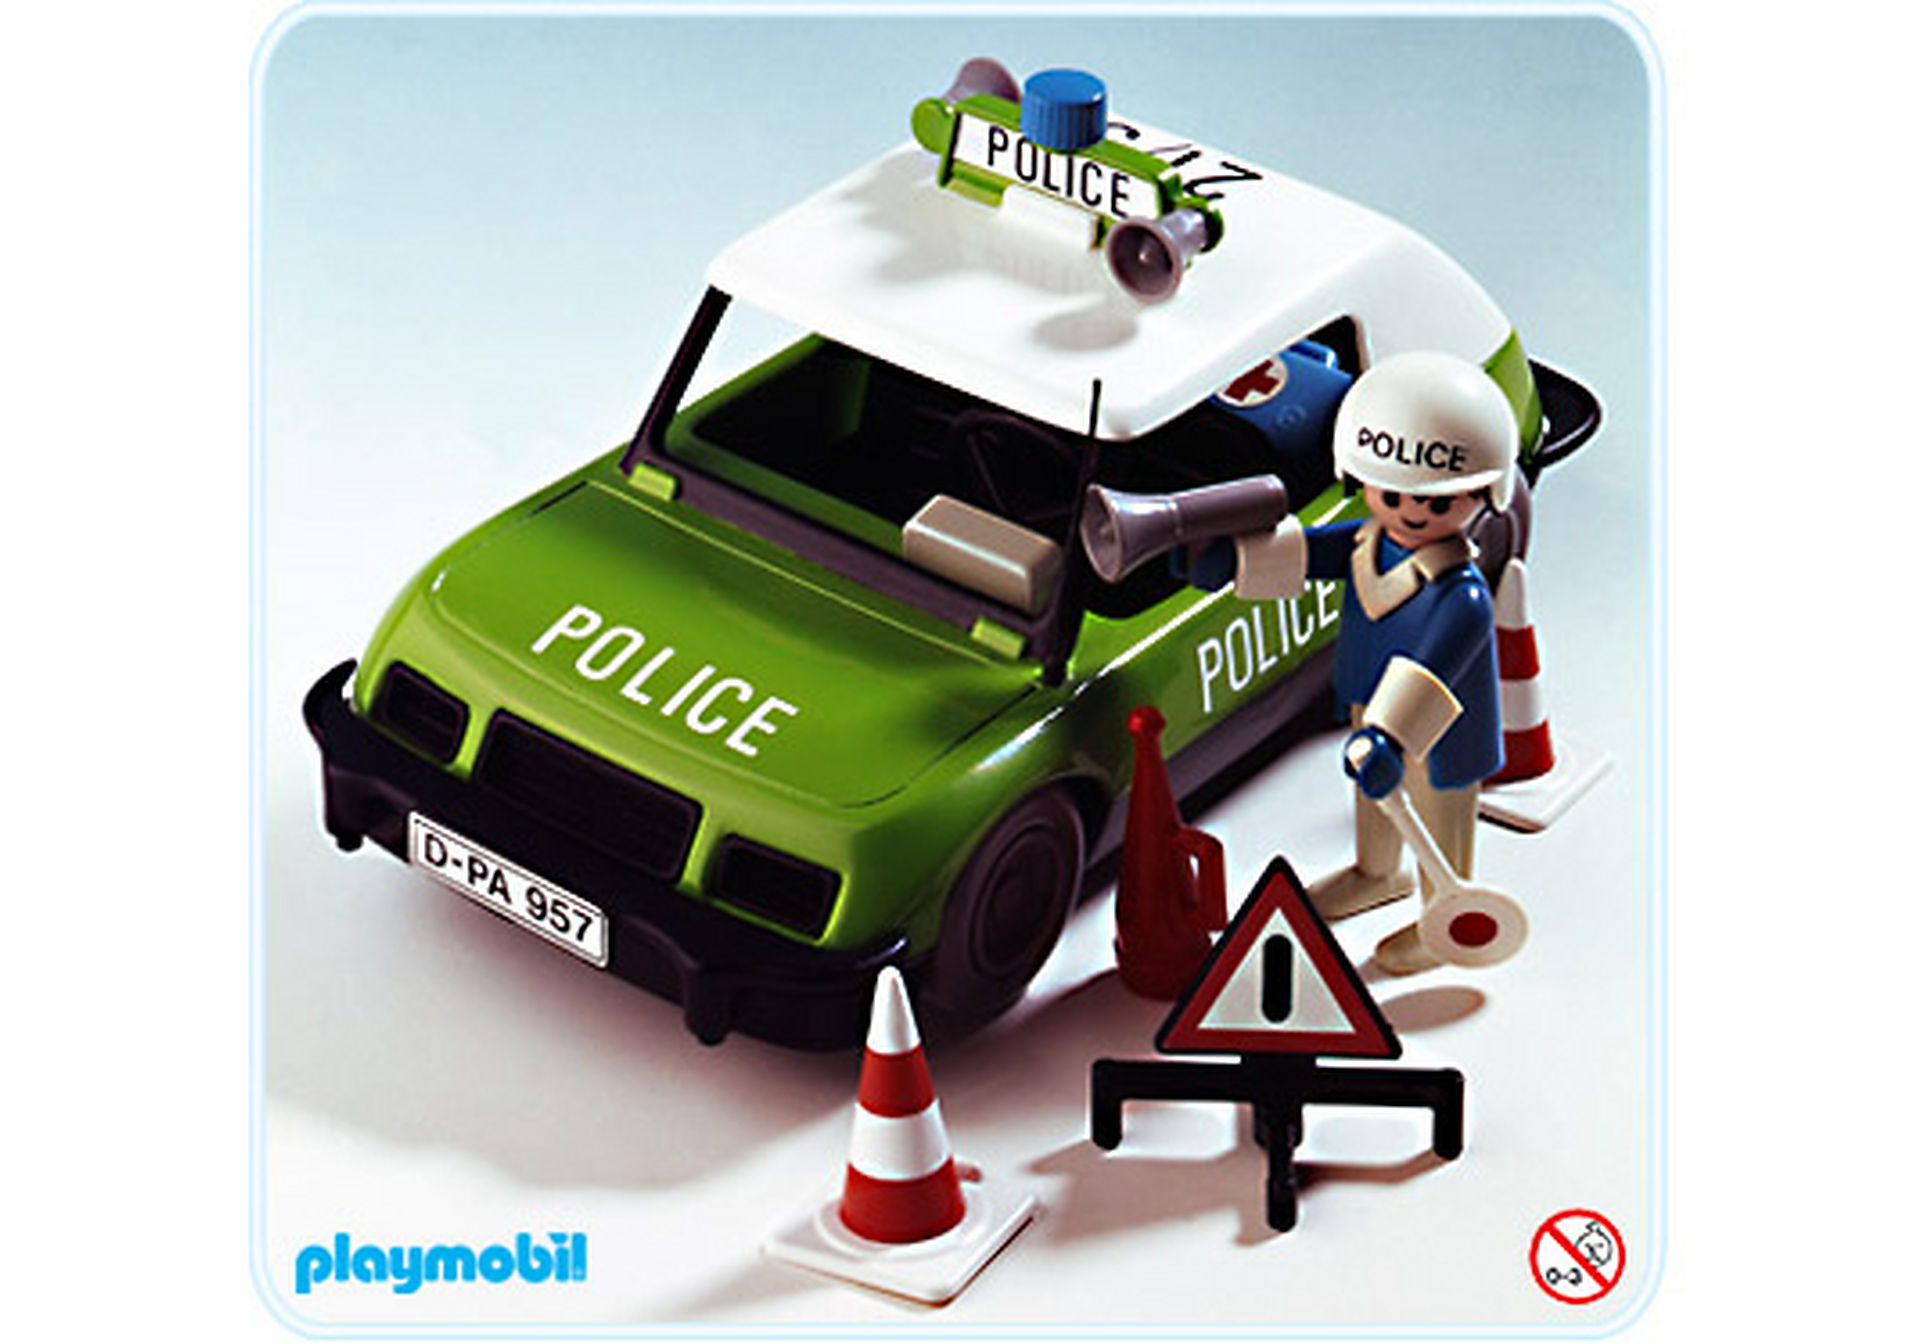 http://media.playmobil.com/i/playmobil/3215-A_product_detail/Voiture de police